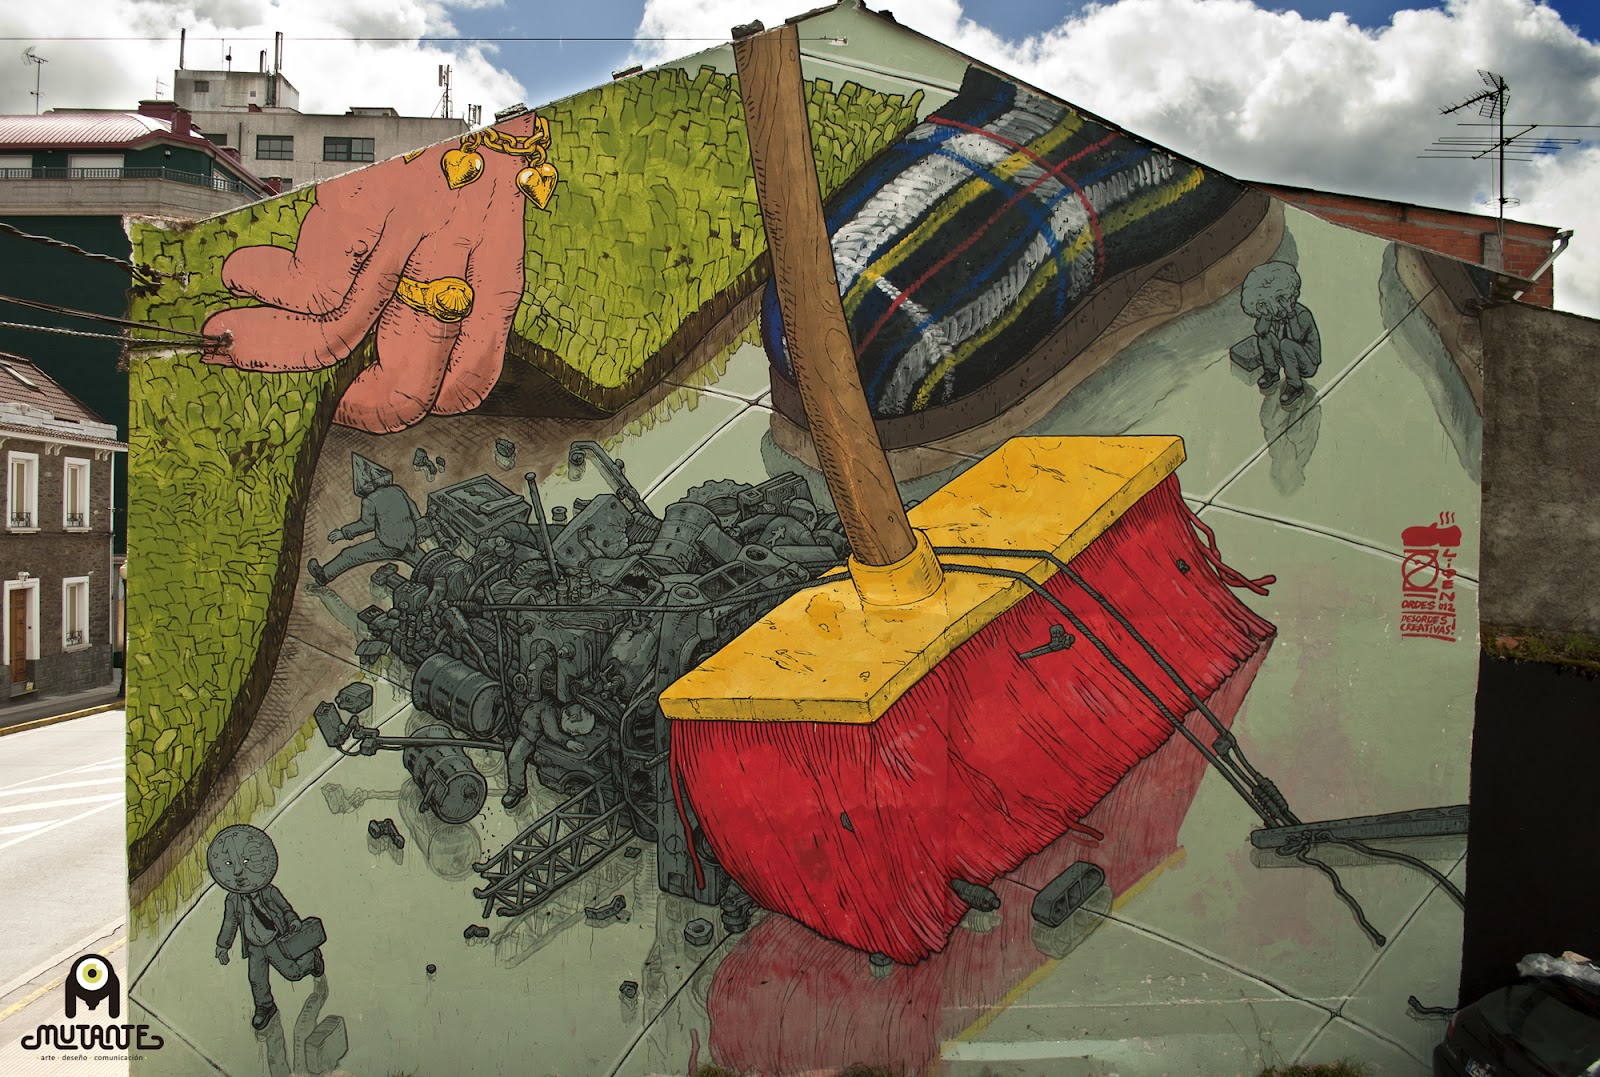 Liqen new mural in ordes spain streetartnews for Definition of a mural